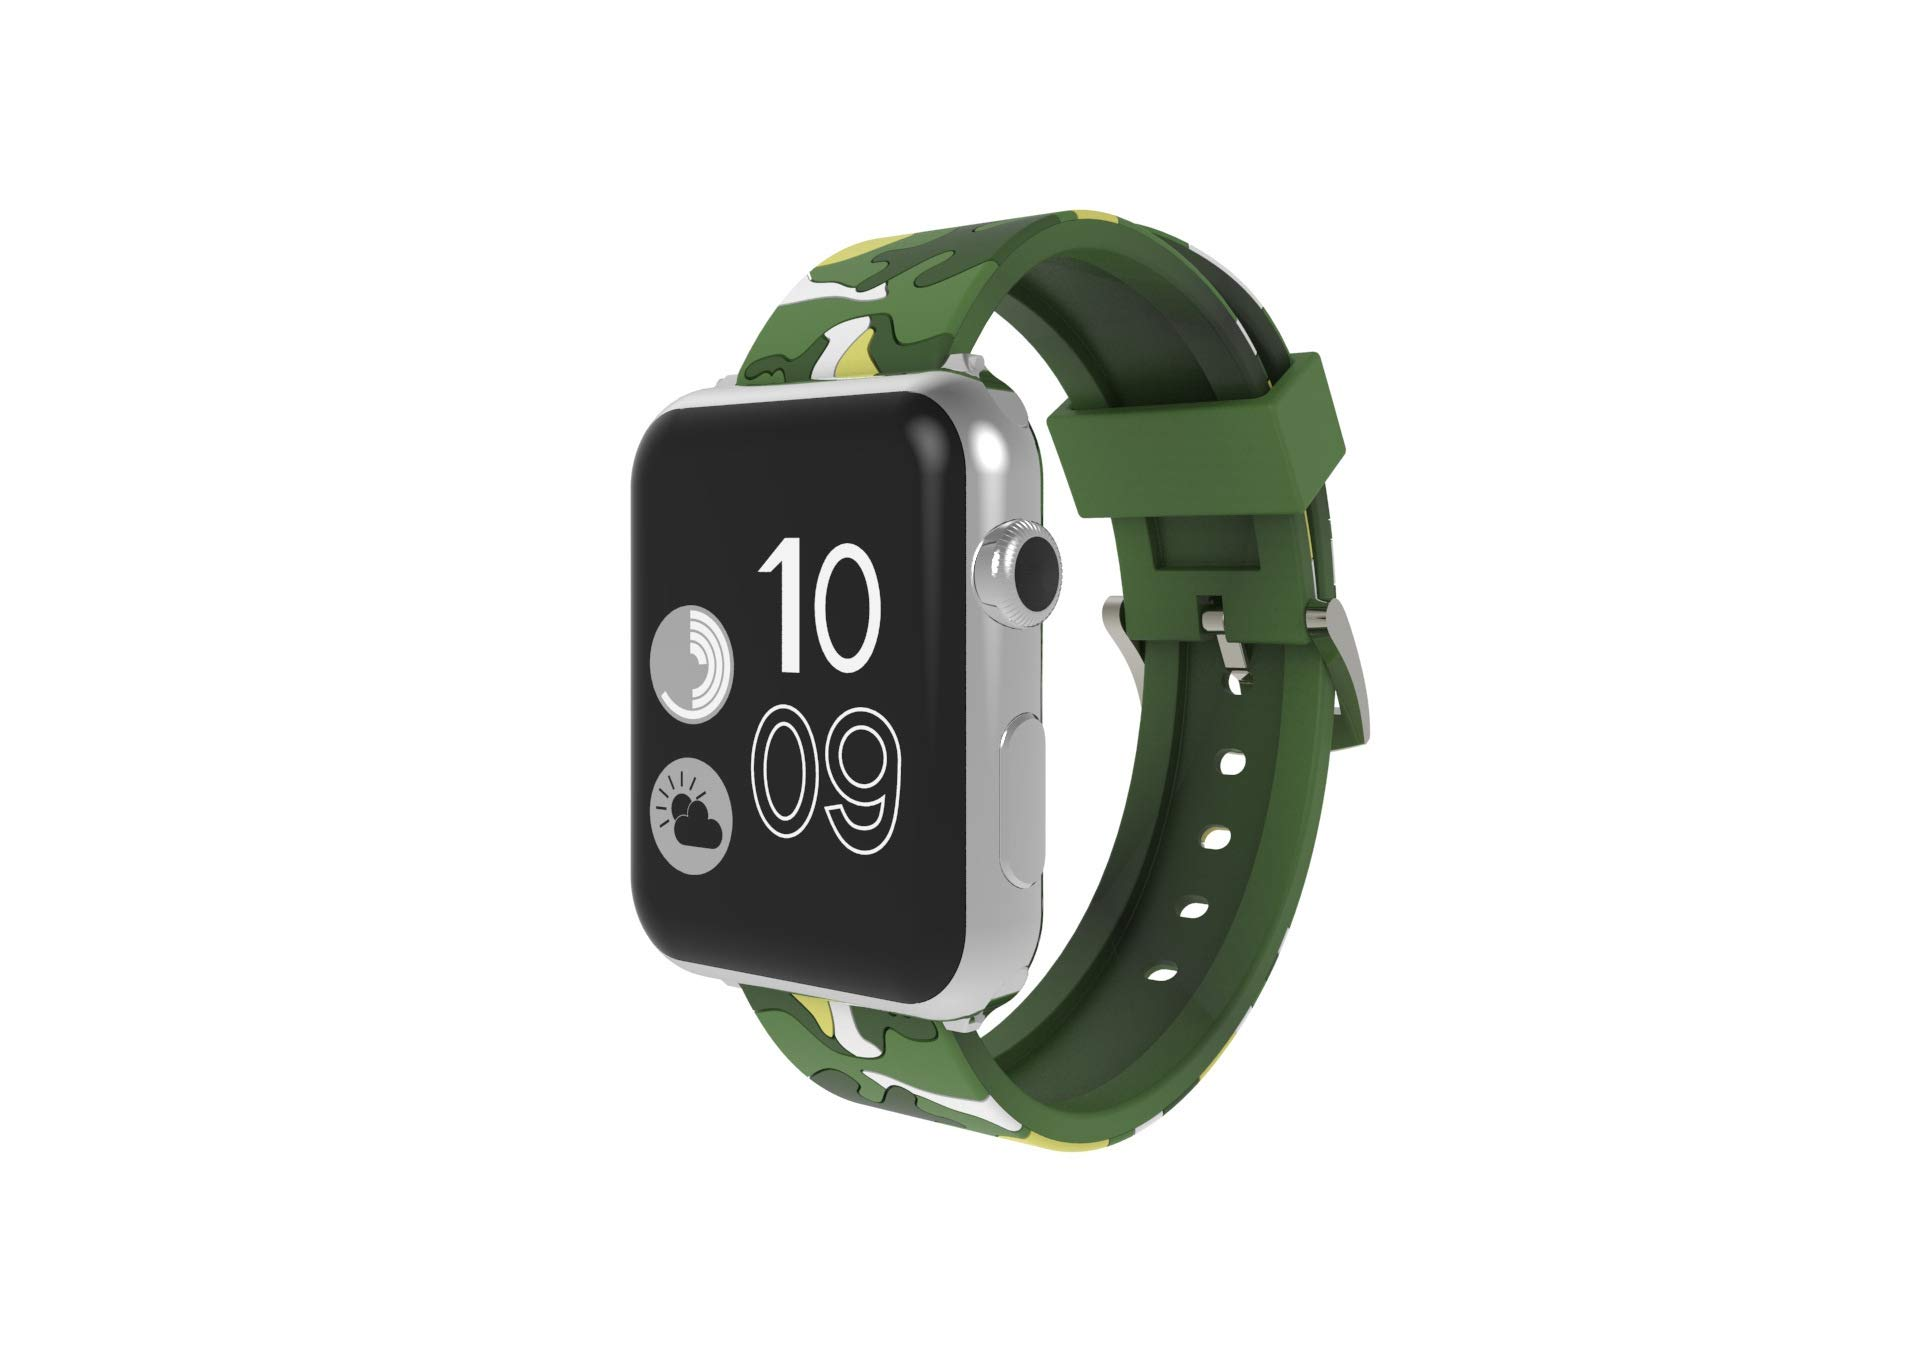 Watch Strap 38mm 42mm 40mm 44mm Camouflage Silicone Replacement for iWatch Series 4 3 2 1 Nike+ by Kortusa